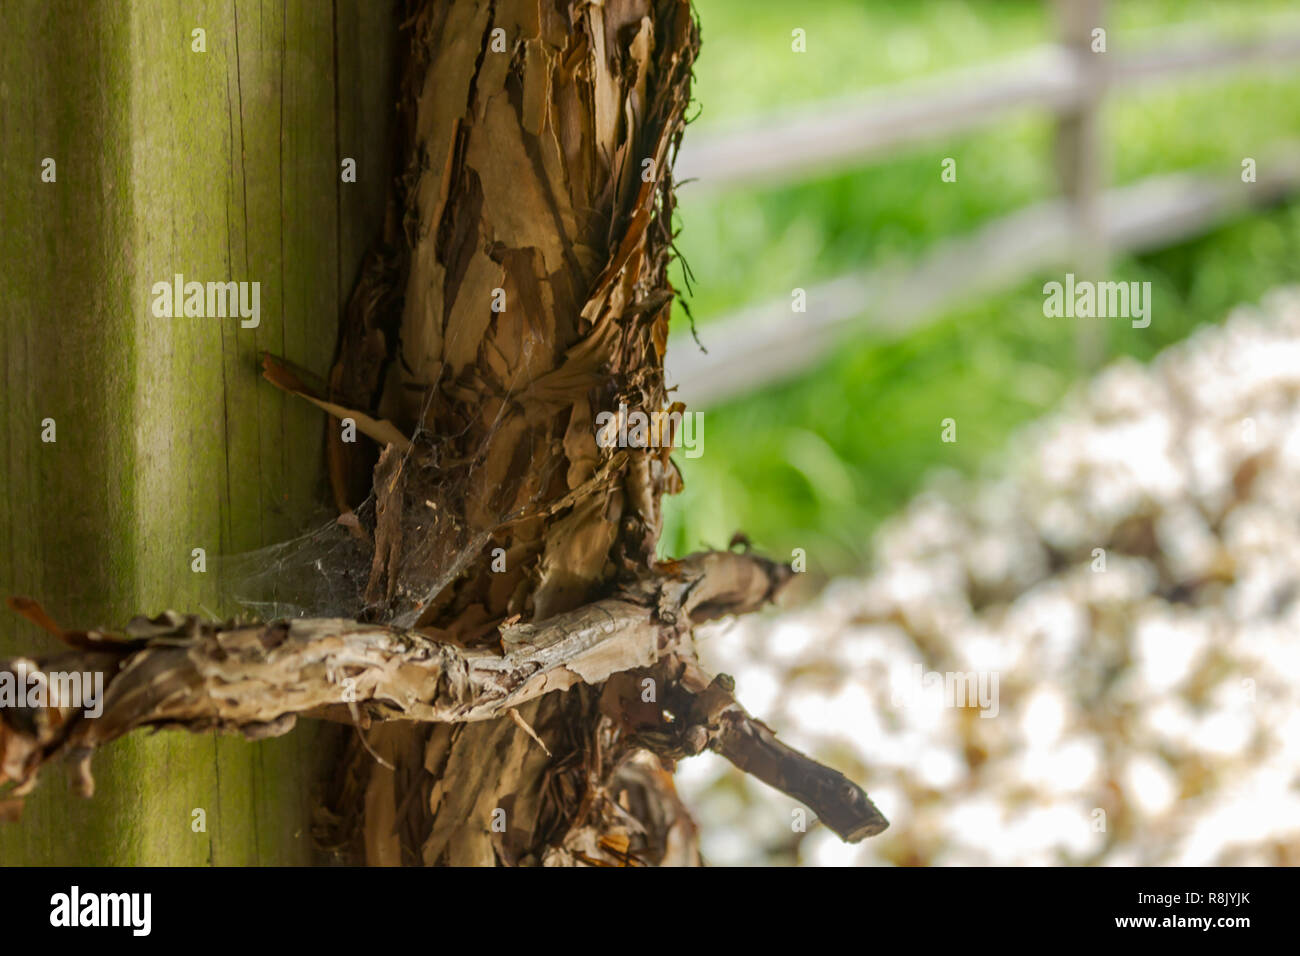 old large vines thincken and strong around wooden frame 2 - Stock Image